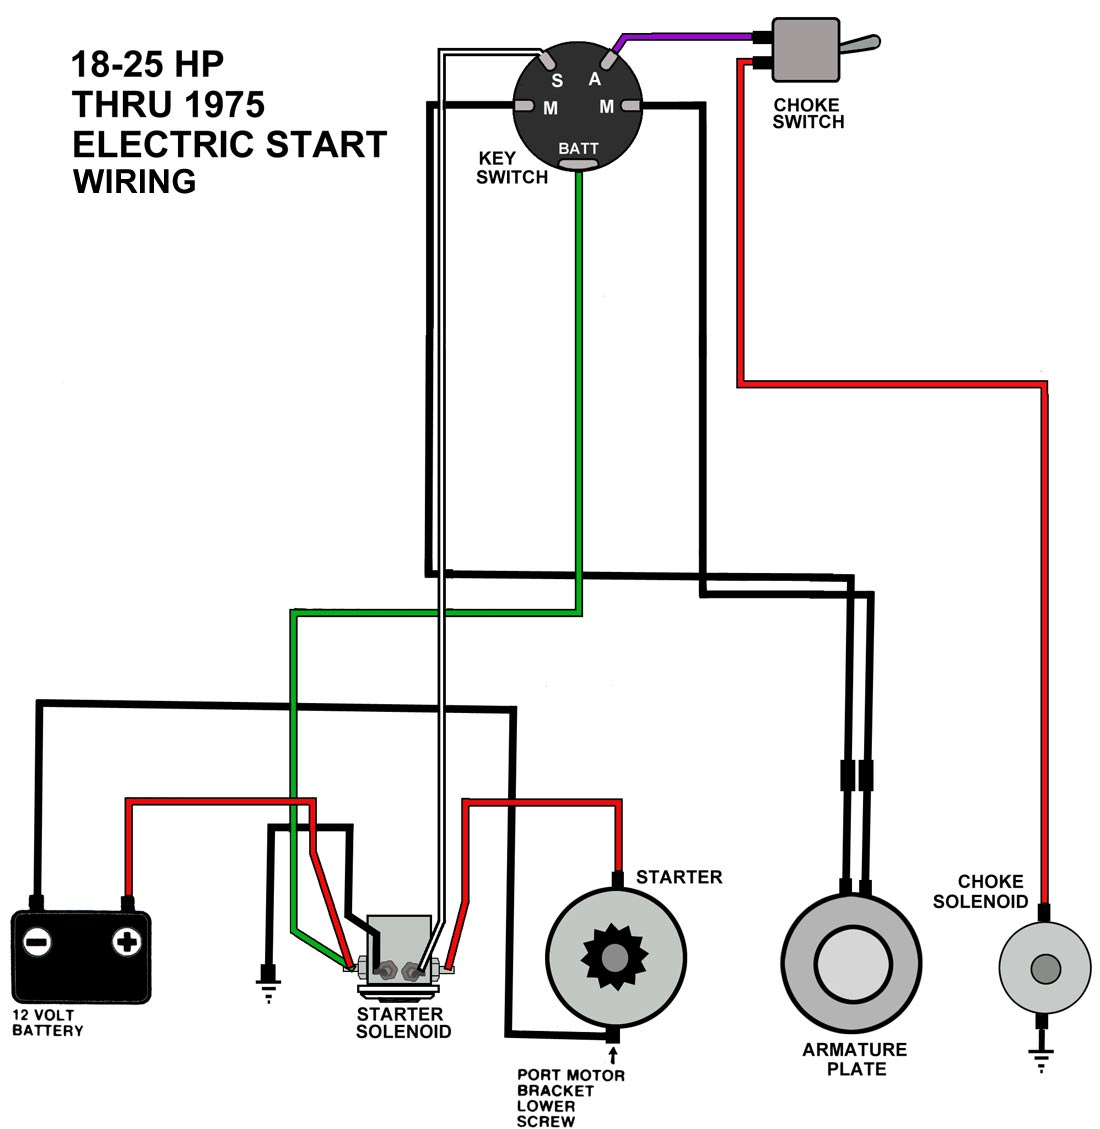 hight resolution of ignition kill switch diagram 15 1 sandybloom nl u2022